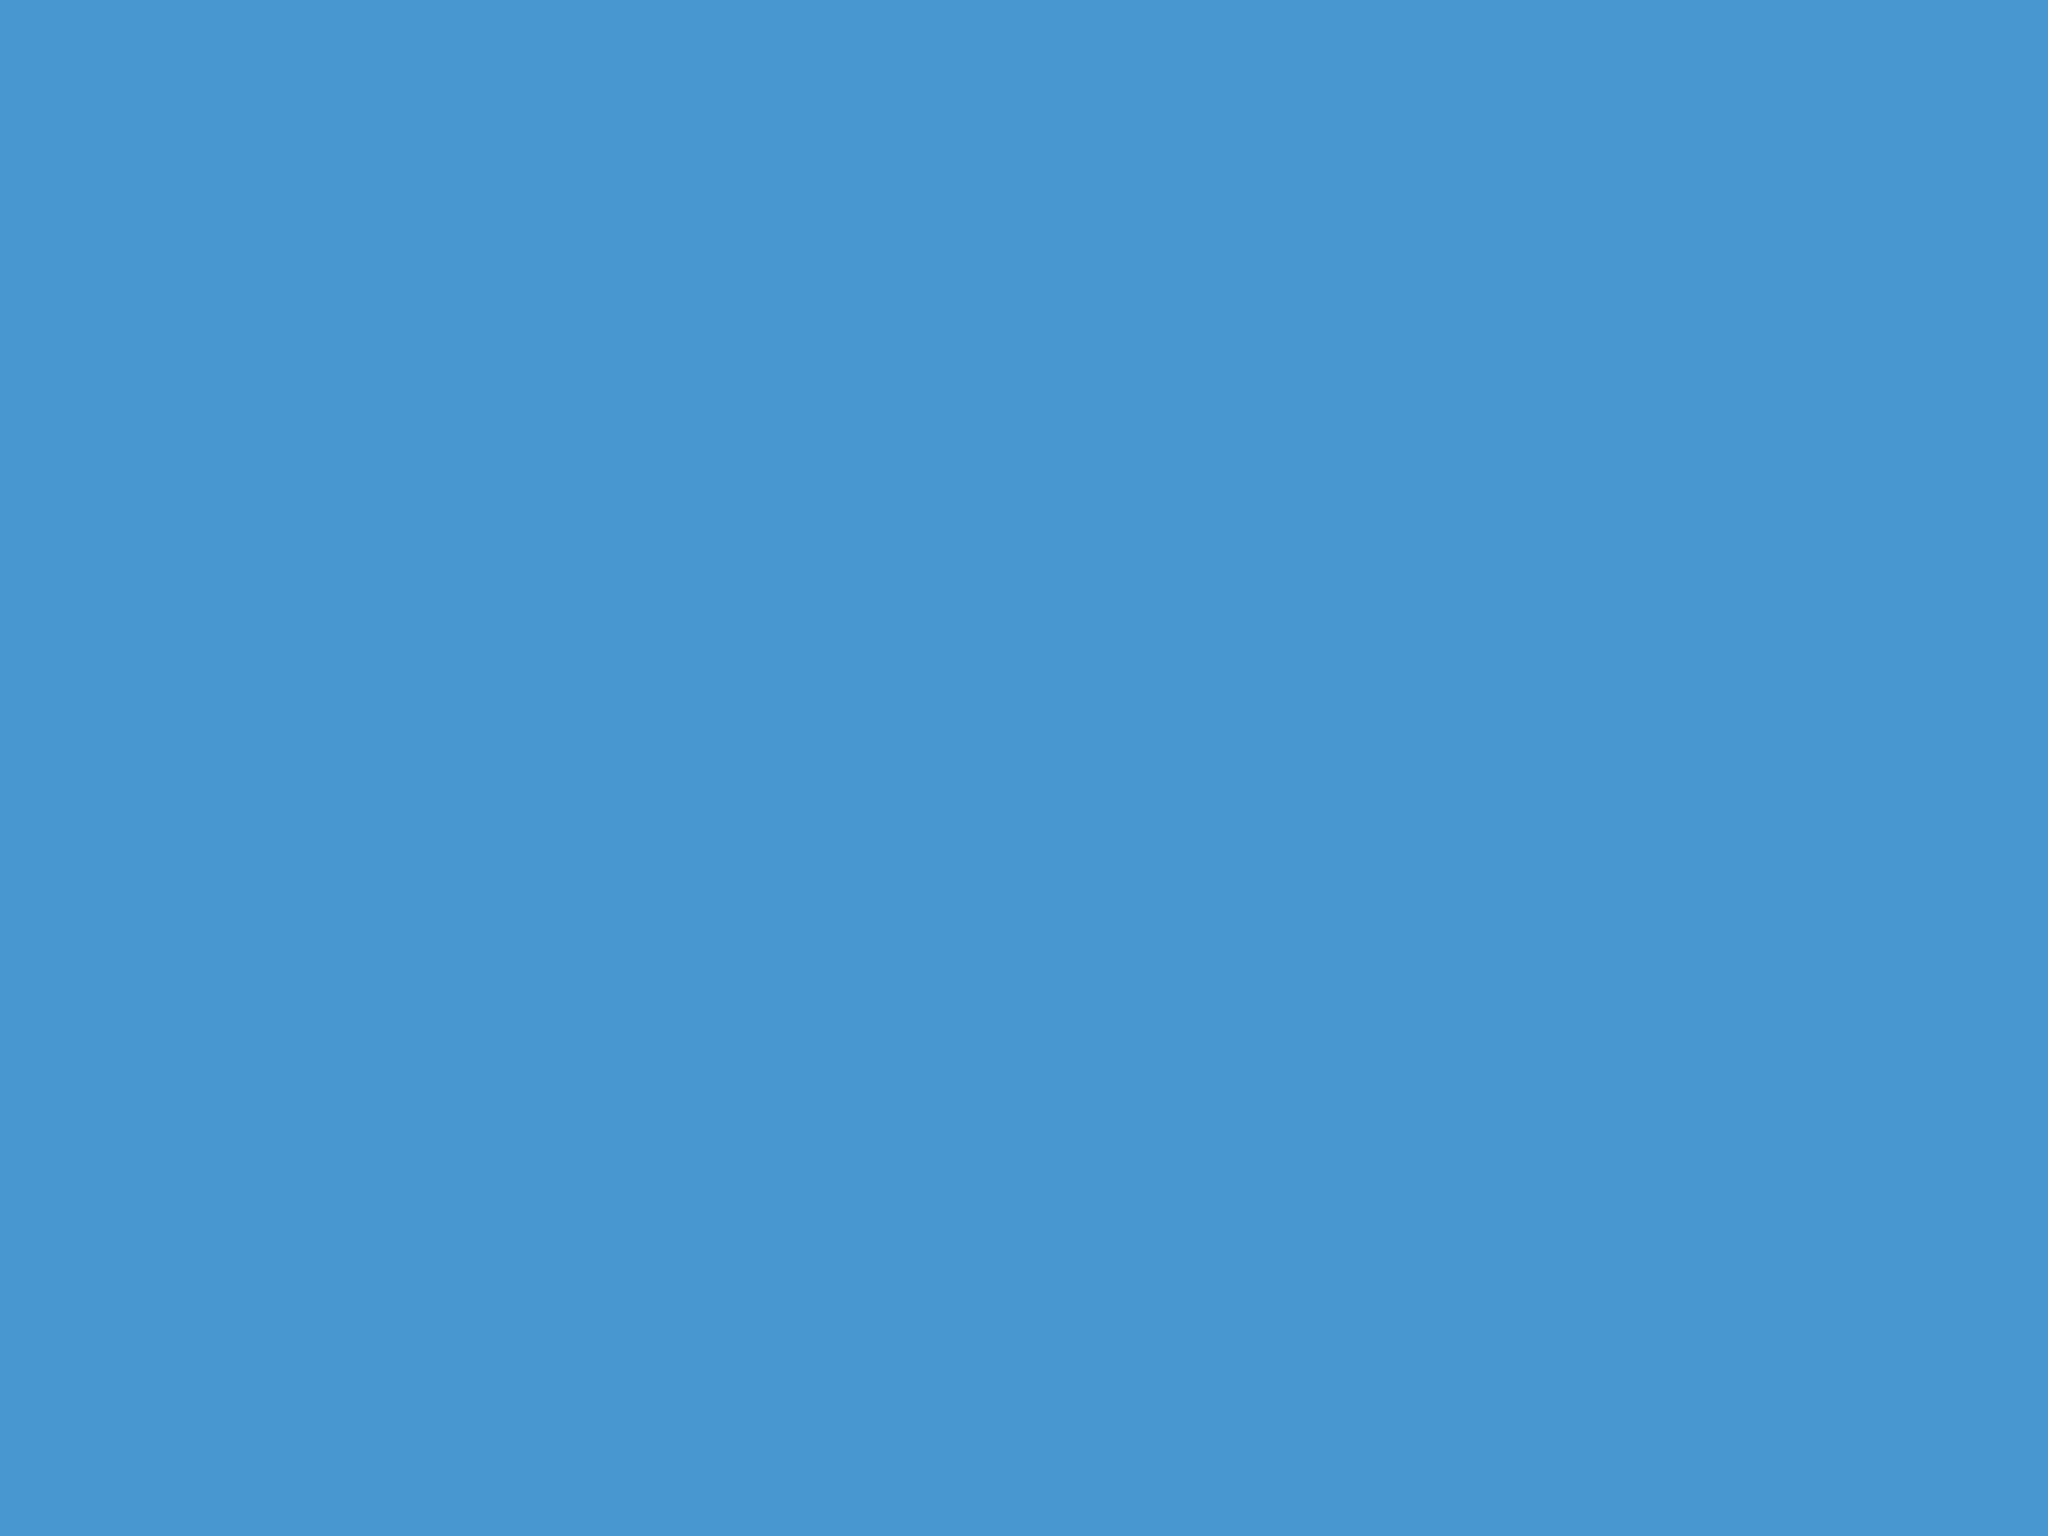 2048x1536 Celestial Blue Solid Color Background